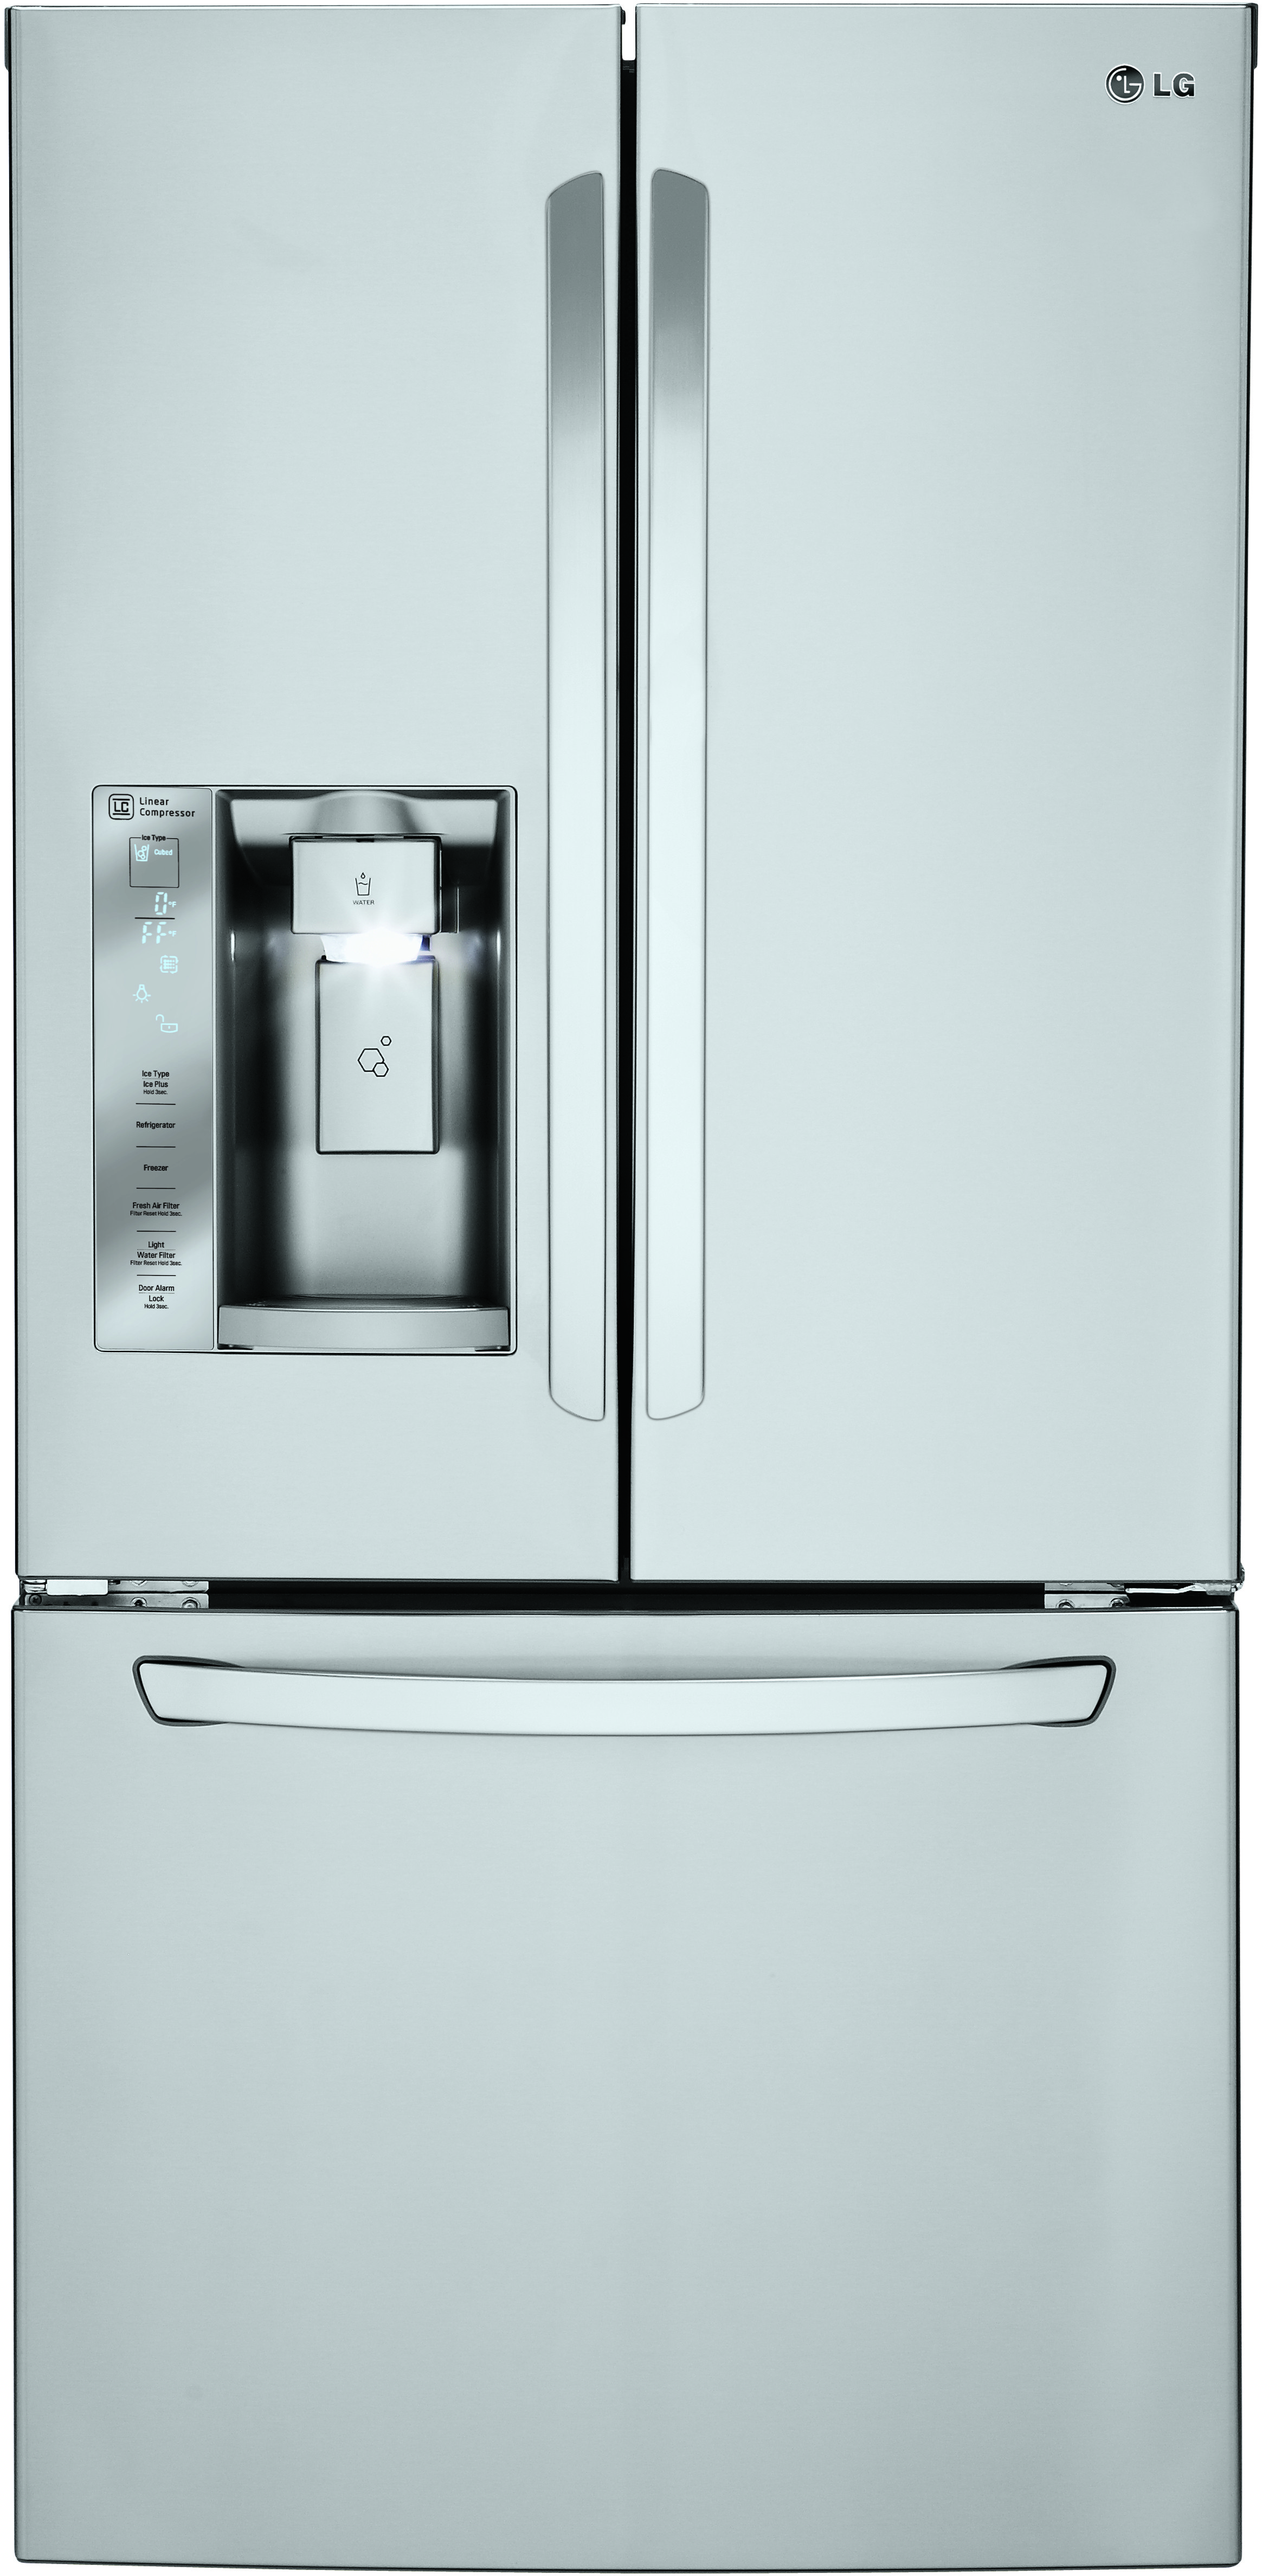 Shop AJMadison\'s Cyber Monday Appliance Sale for Amazing Savings